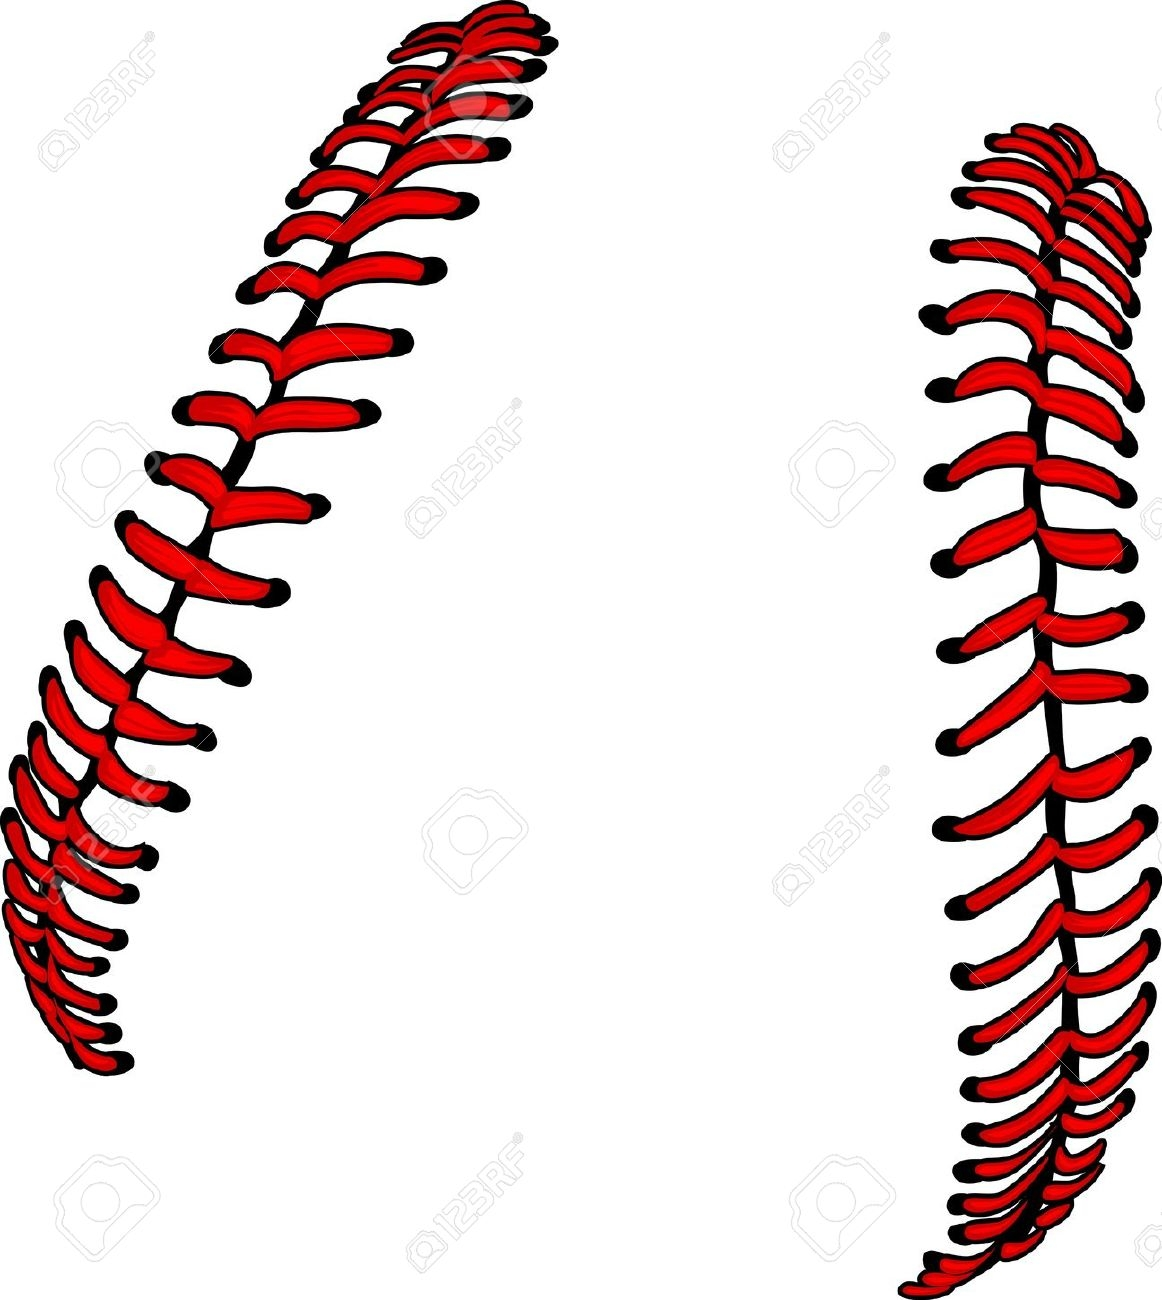 Softball threads clipart.